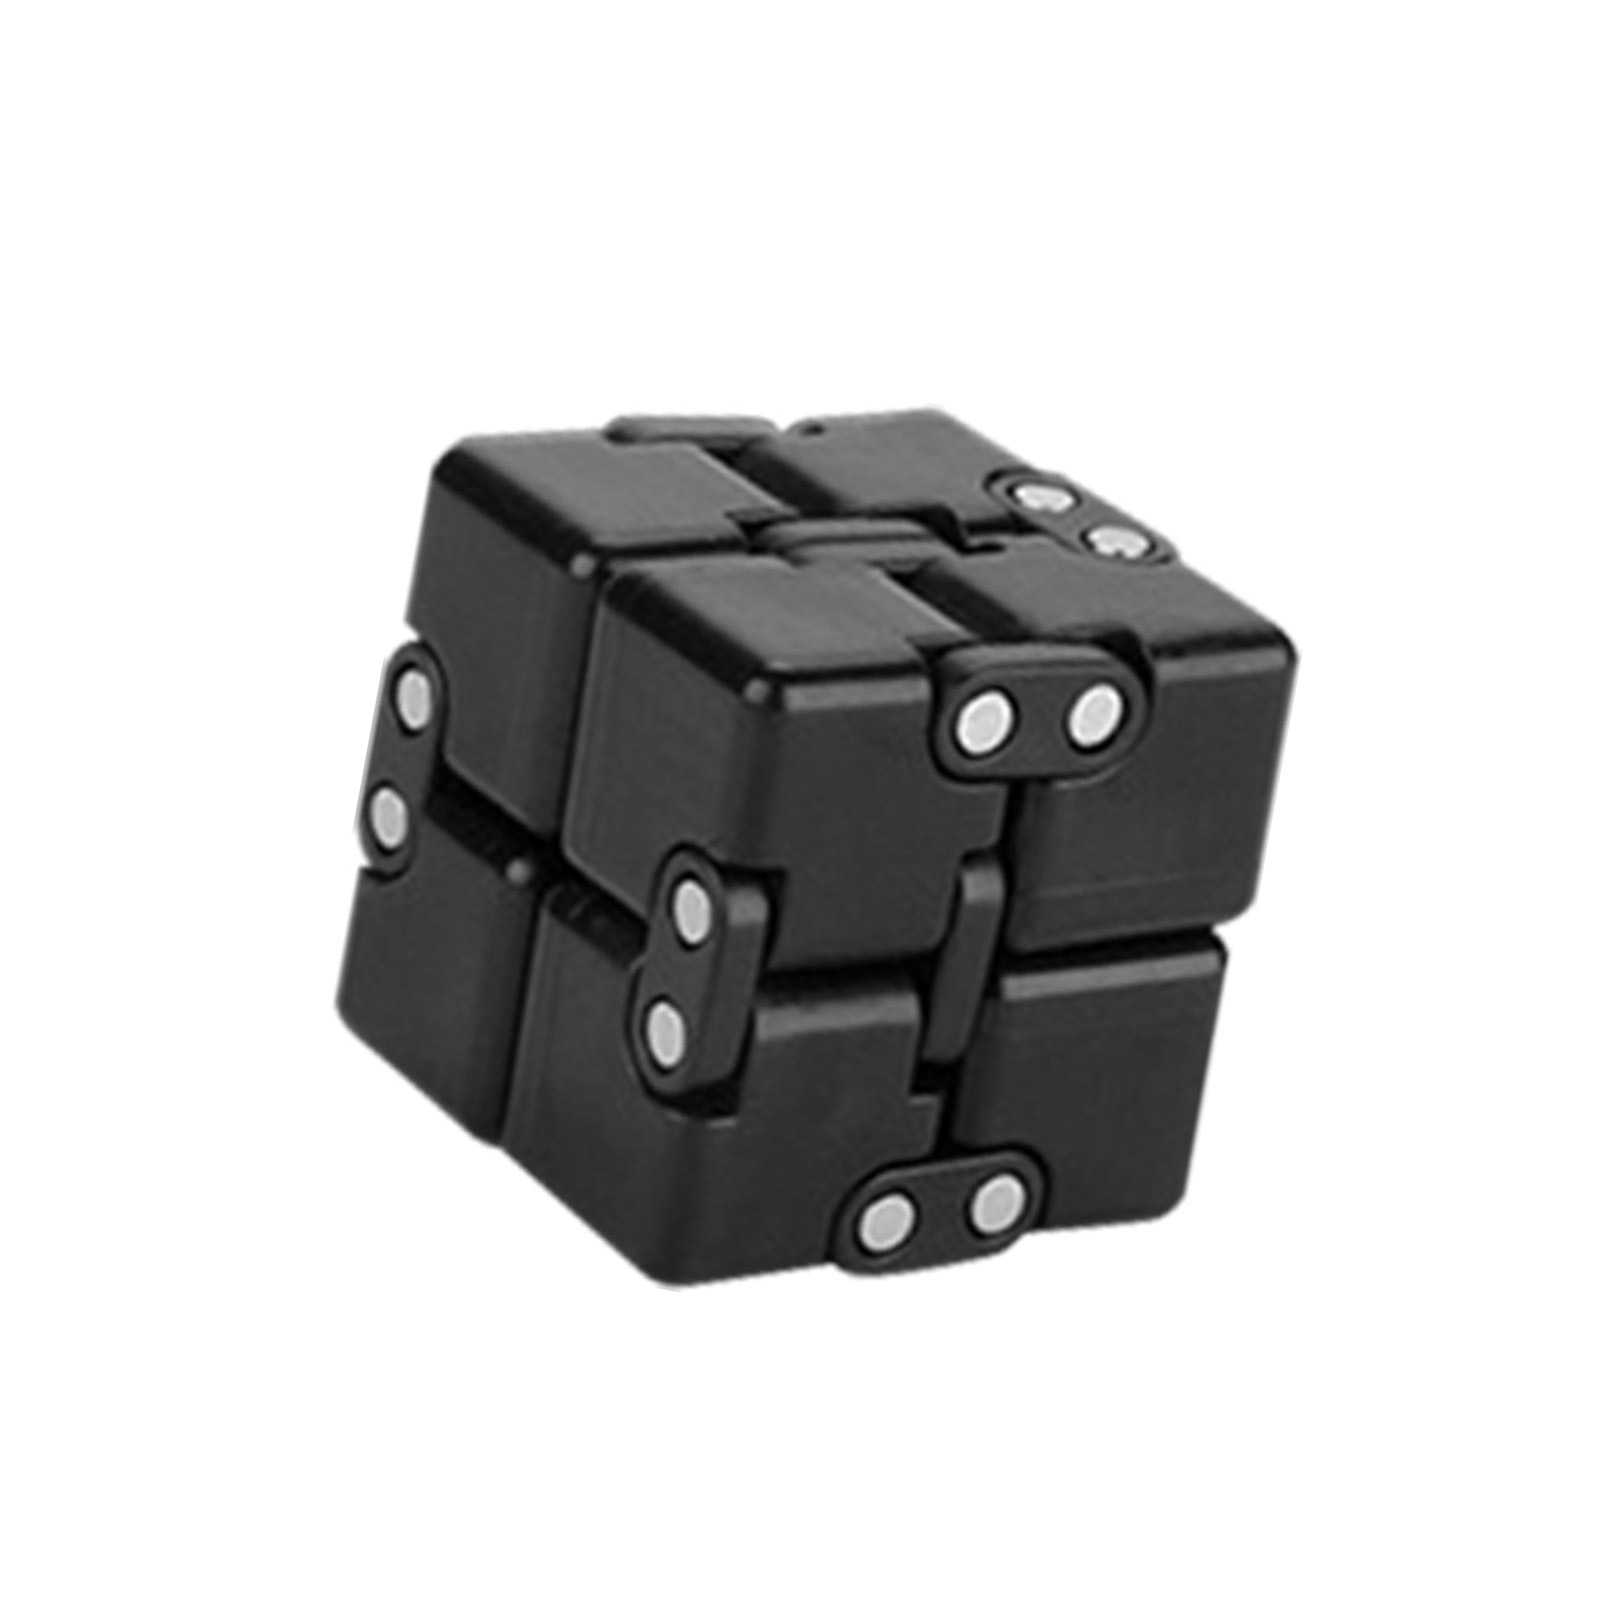 Fidget Toys For Children Fingertips Infinity Puzzle Cube Fidget Toy Sensory Stress Relief Magic Cube Square Antistress Toys enlarge